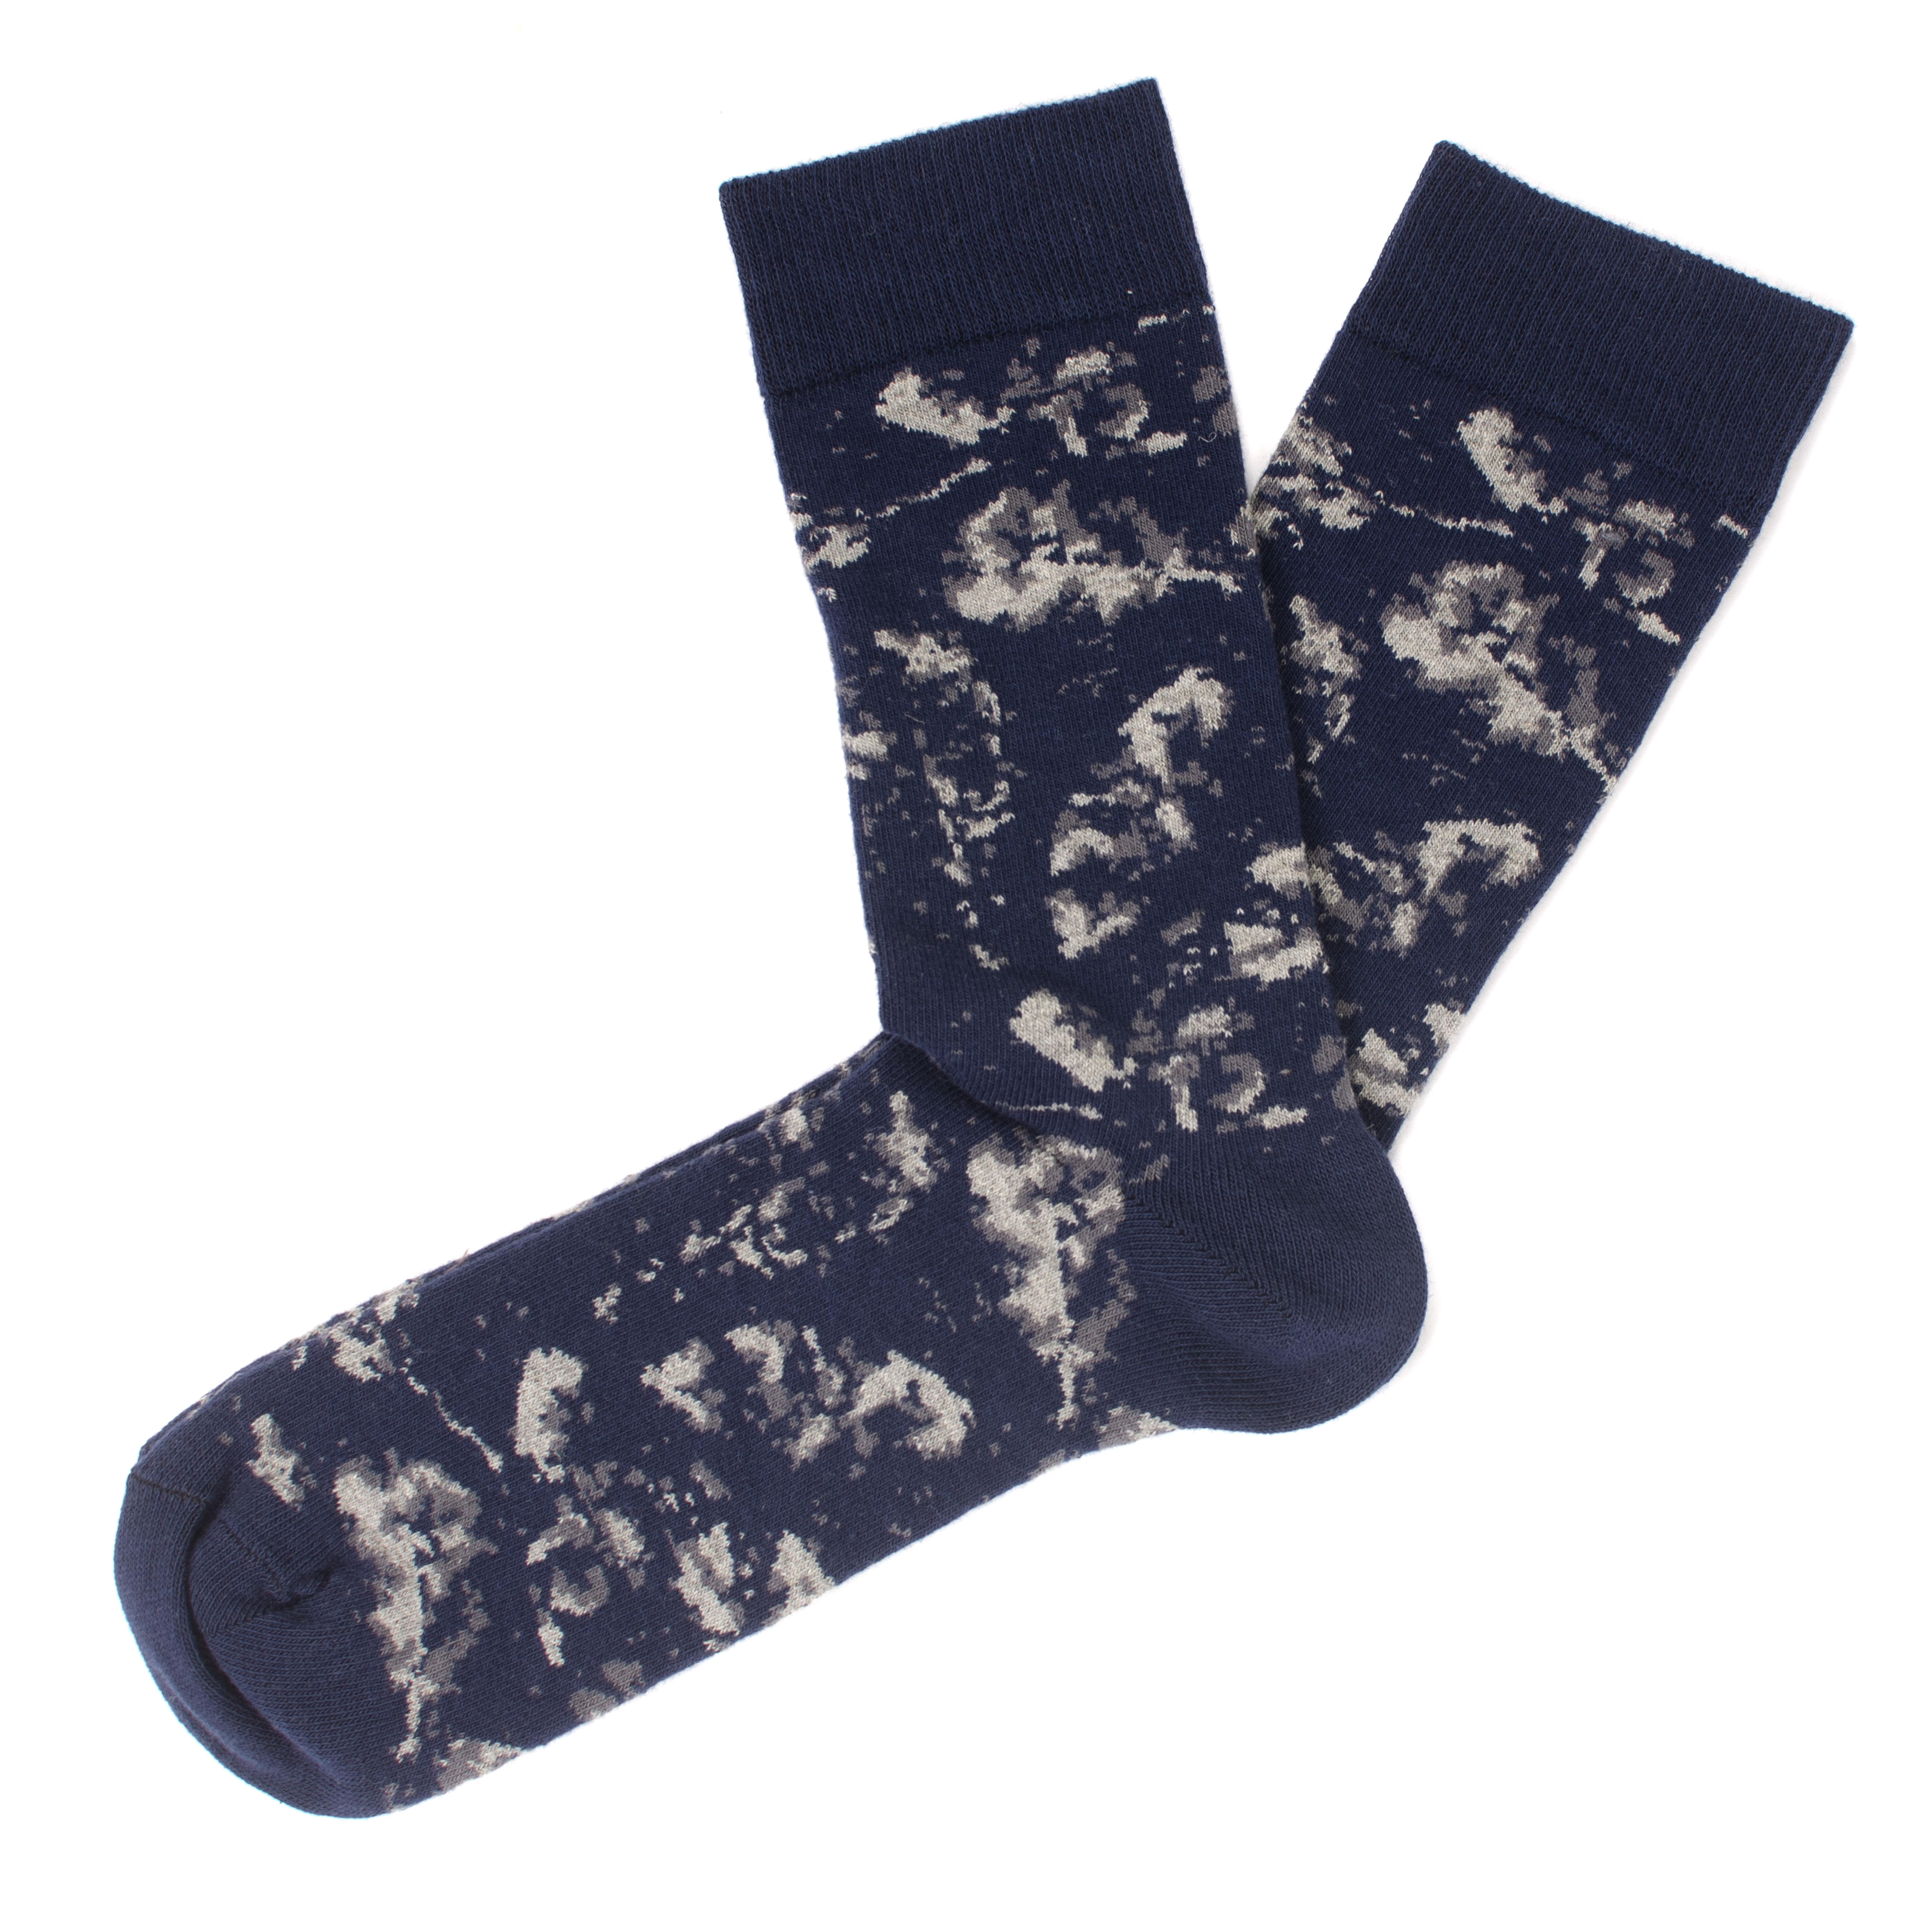 Jaden | Distorted leaves socks